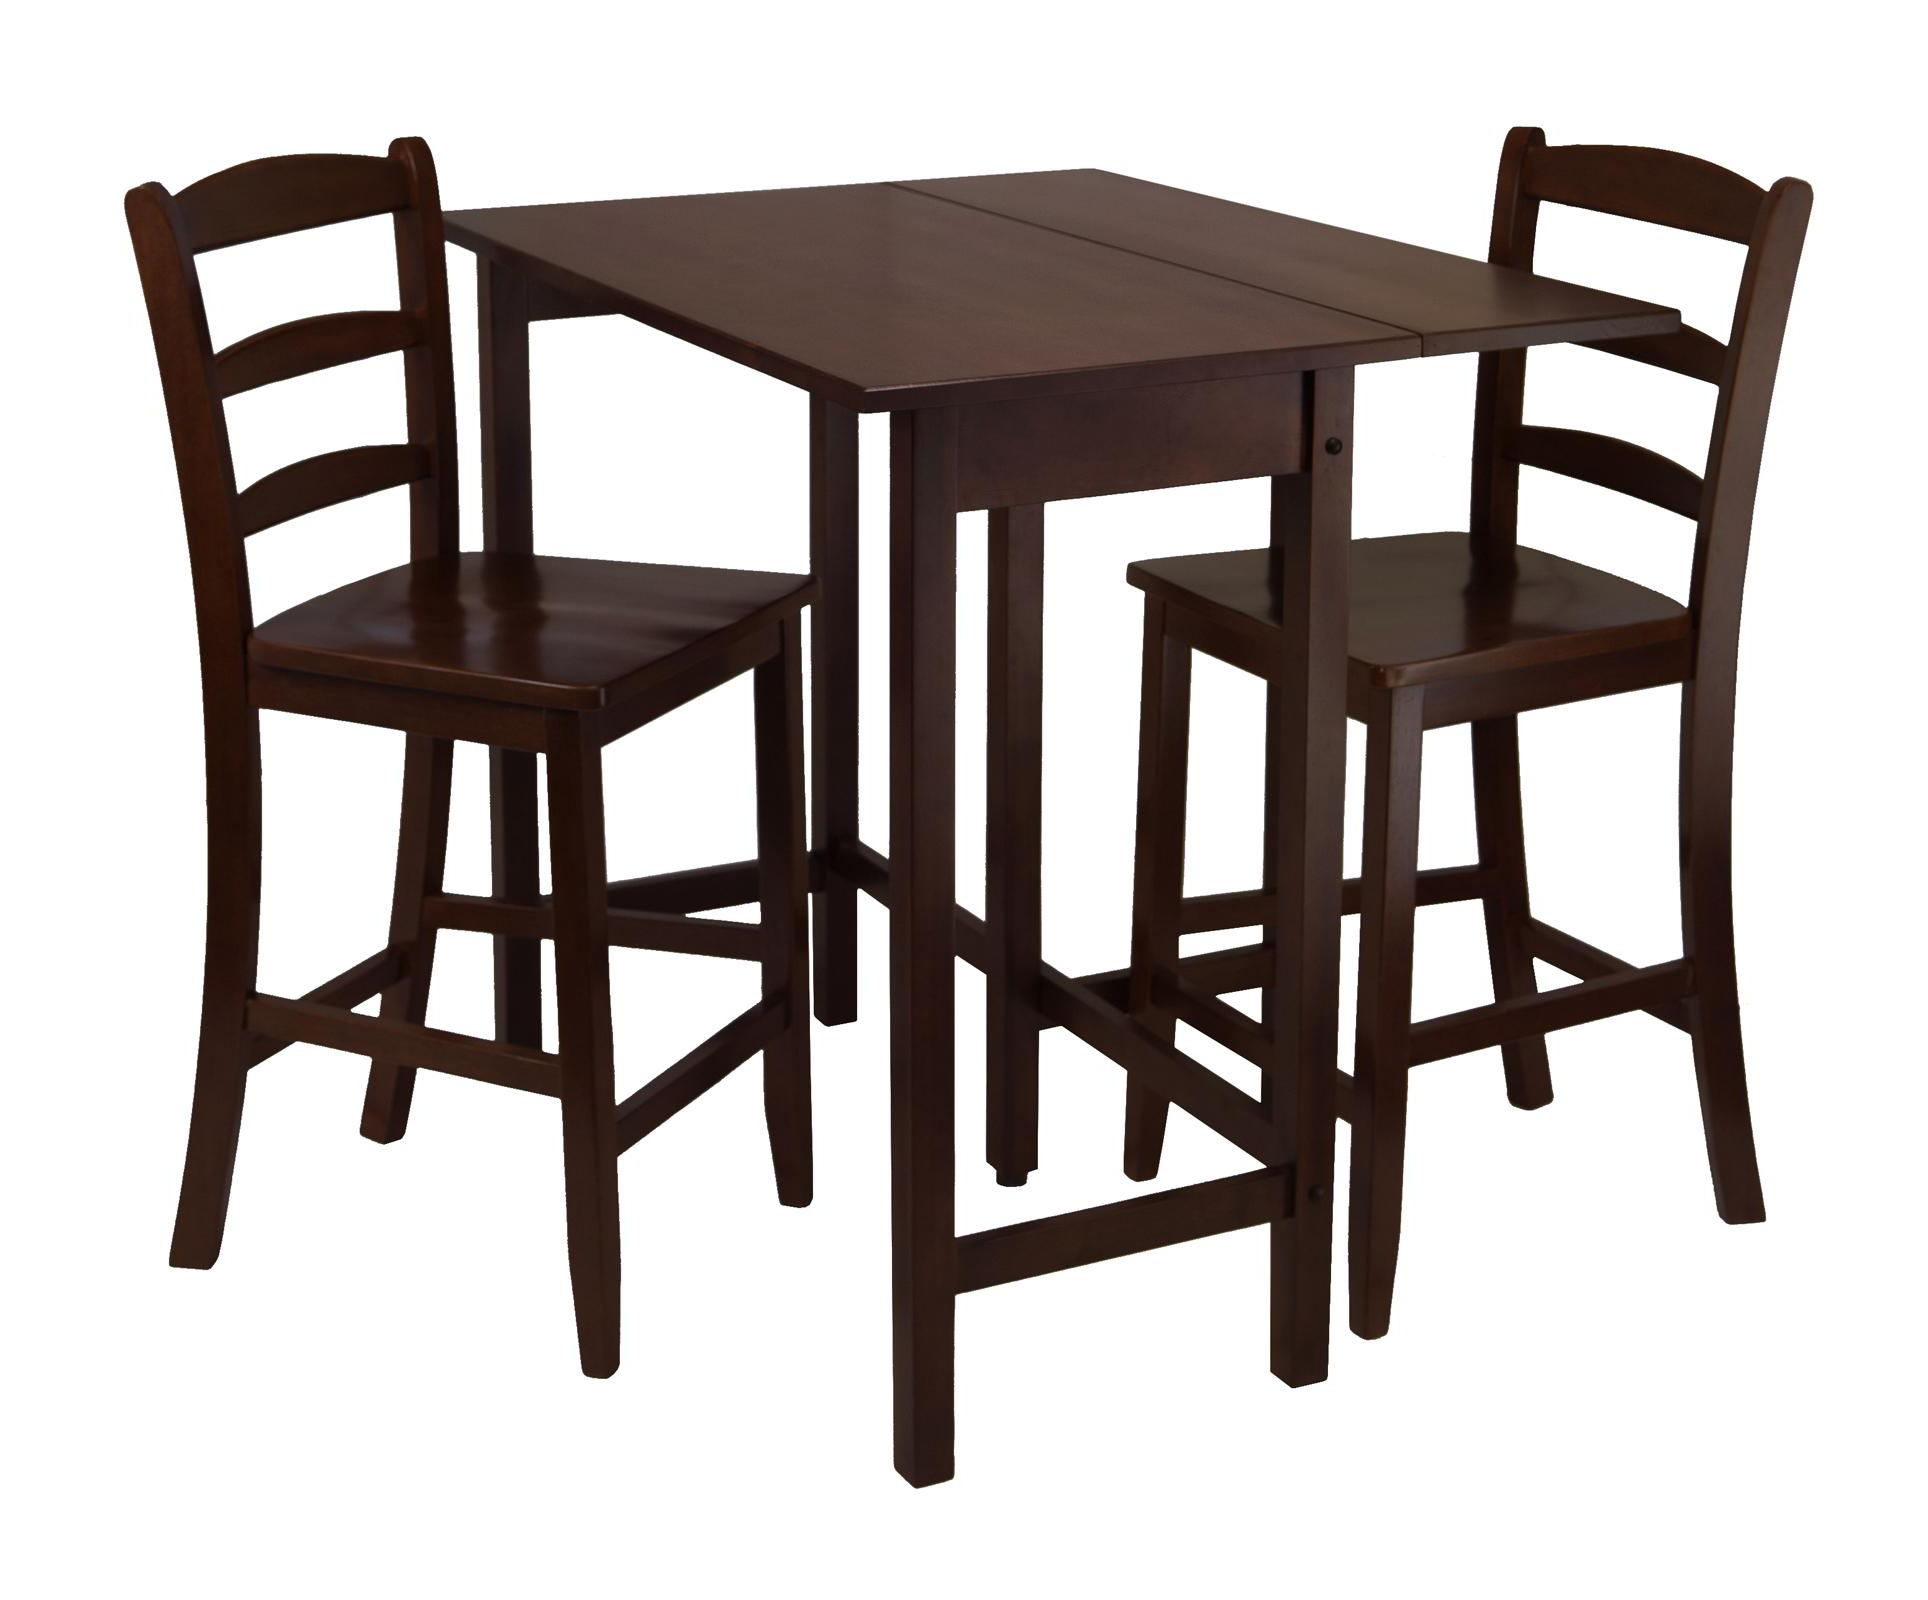 Well Liked Winsome Lynnwood 3Pc Drop Leaf High Table With 2 Counter Regarding Winsome 3 Piece Counter Height Dining Sets (View 8 of 20)